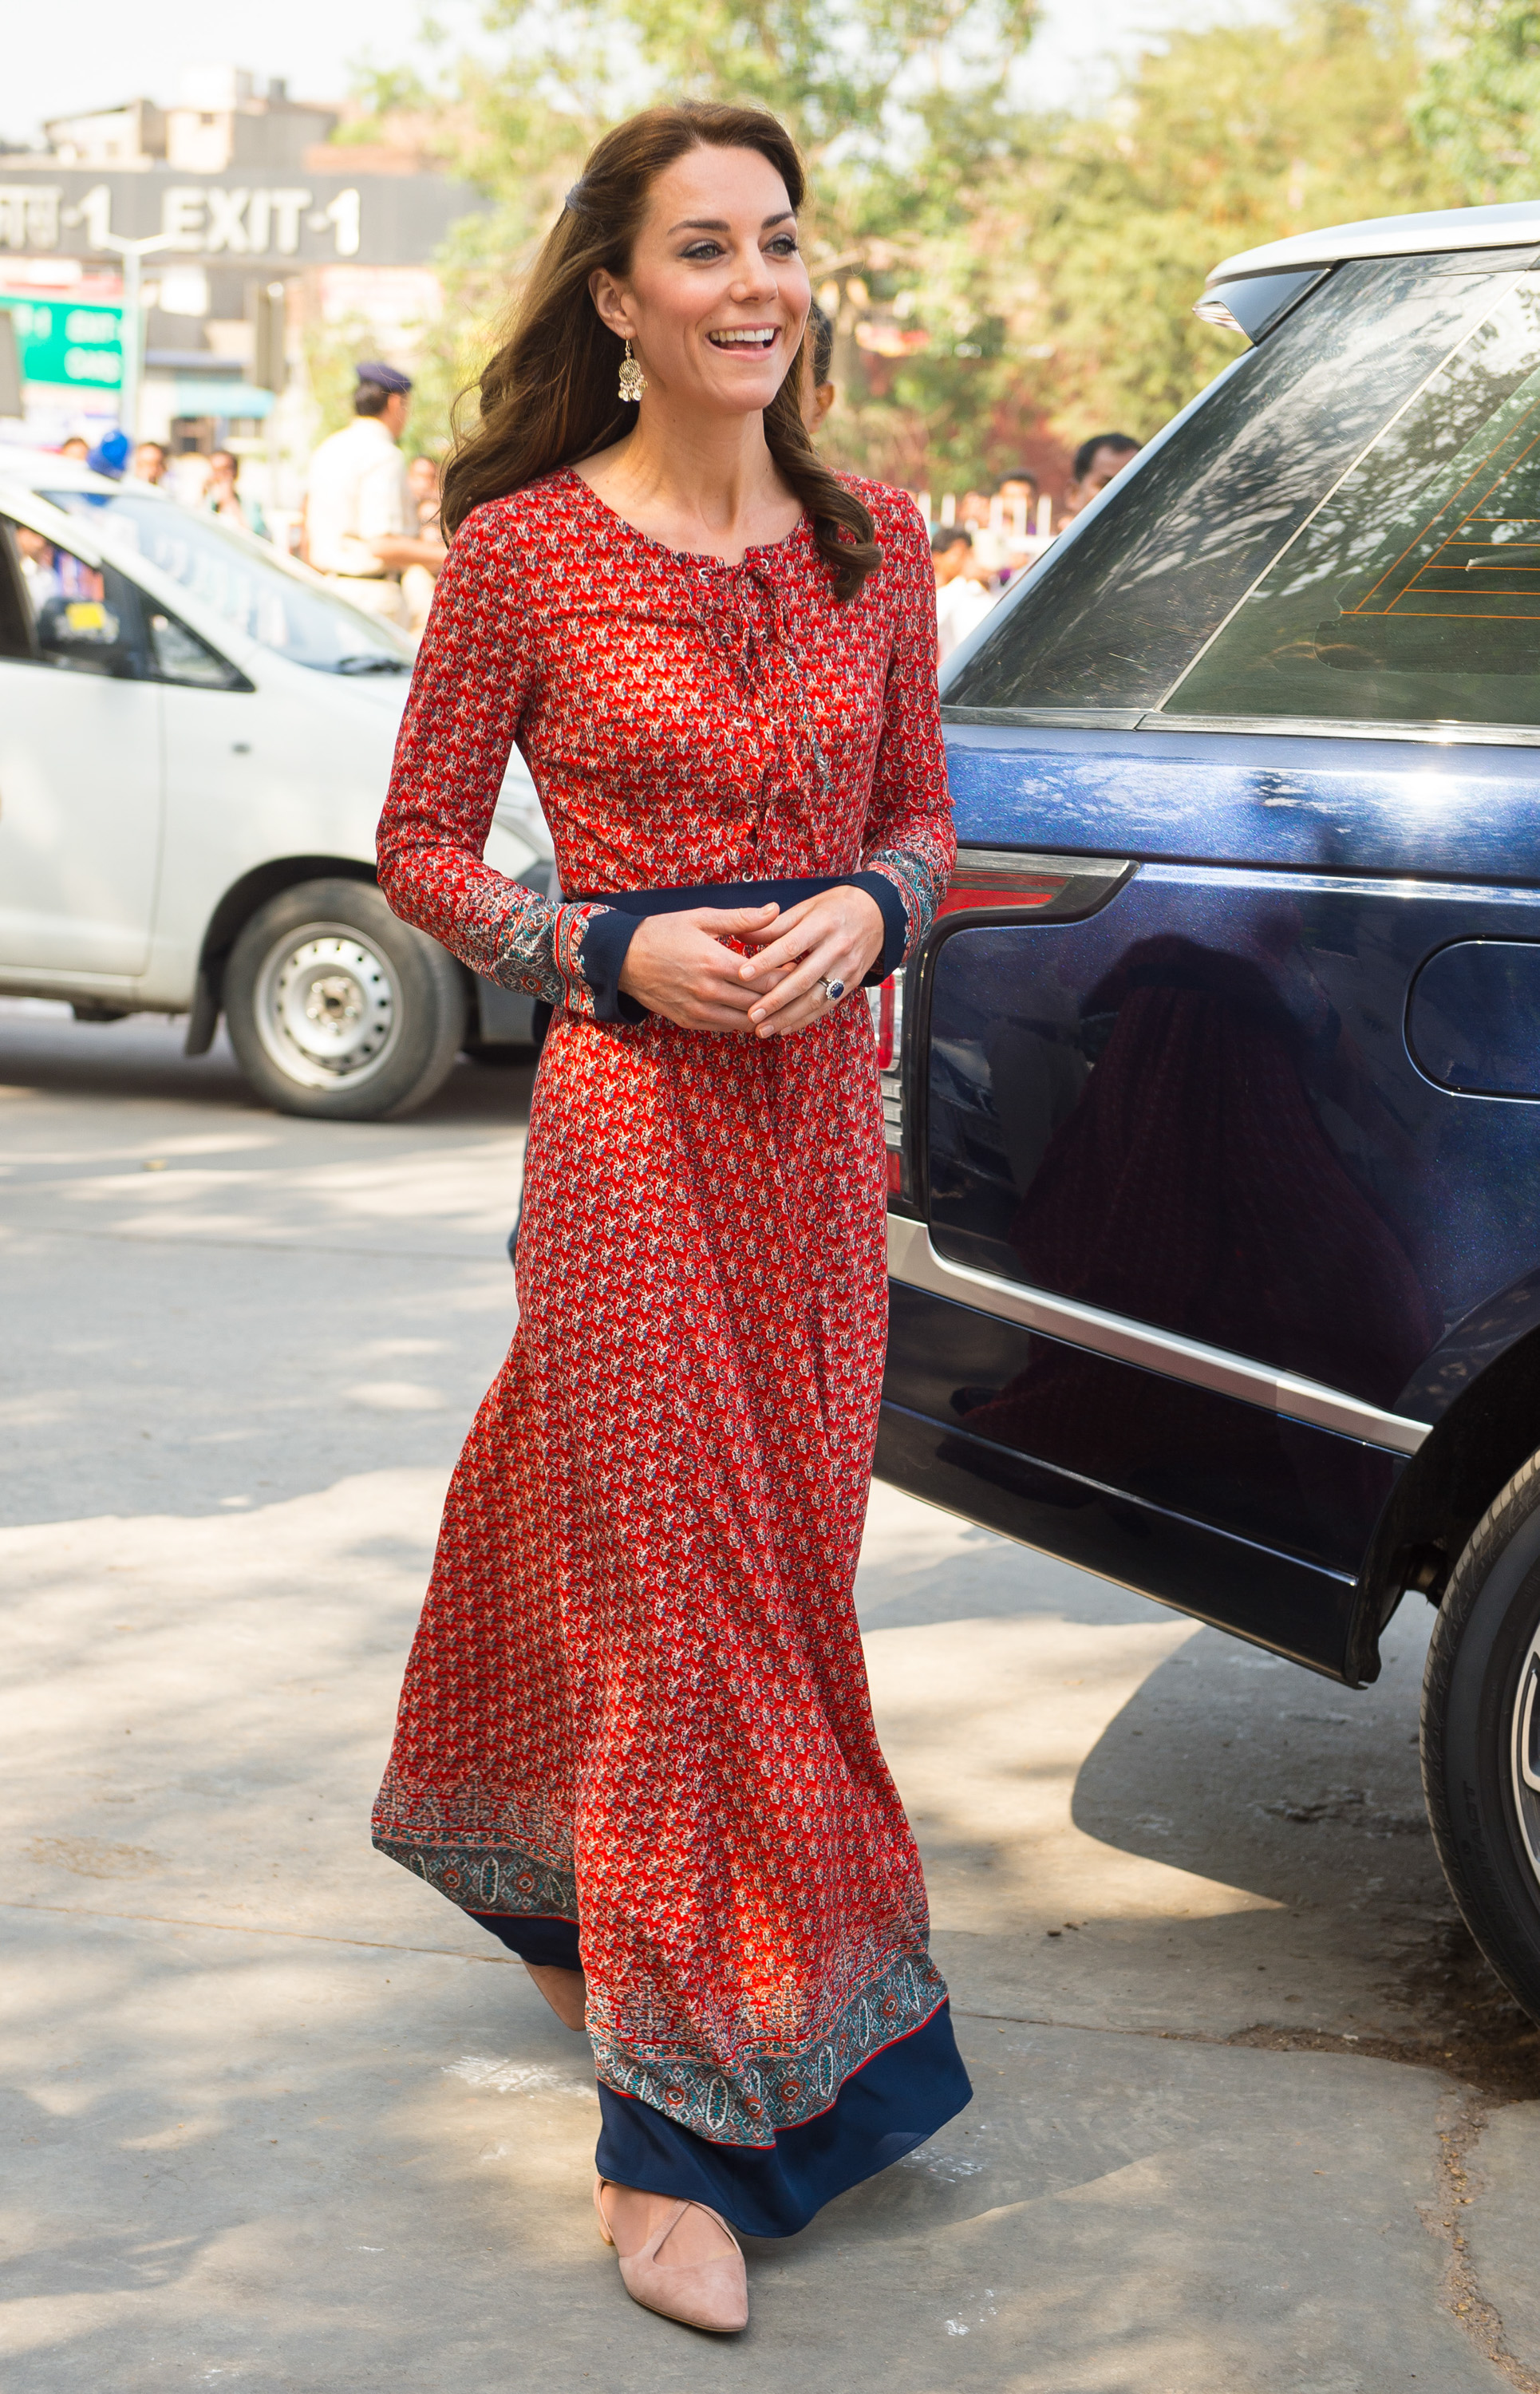 During the Duke and Duchess of Cambridge's tour of India and Bhutan, Kate Middleton has worn some truly inspired looks - one of which caused designer Anita Dongre's website to crash in the frenzy that followed. Taking influence from Indian and Bhutanese prints, and even mixing traditional dress with designer fashion, this is surely Kate's chicest tour yet.